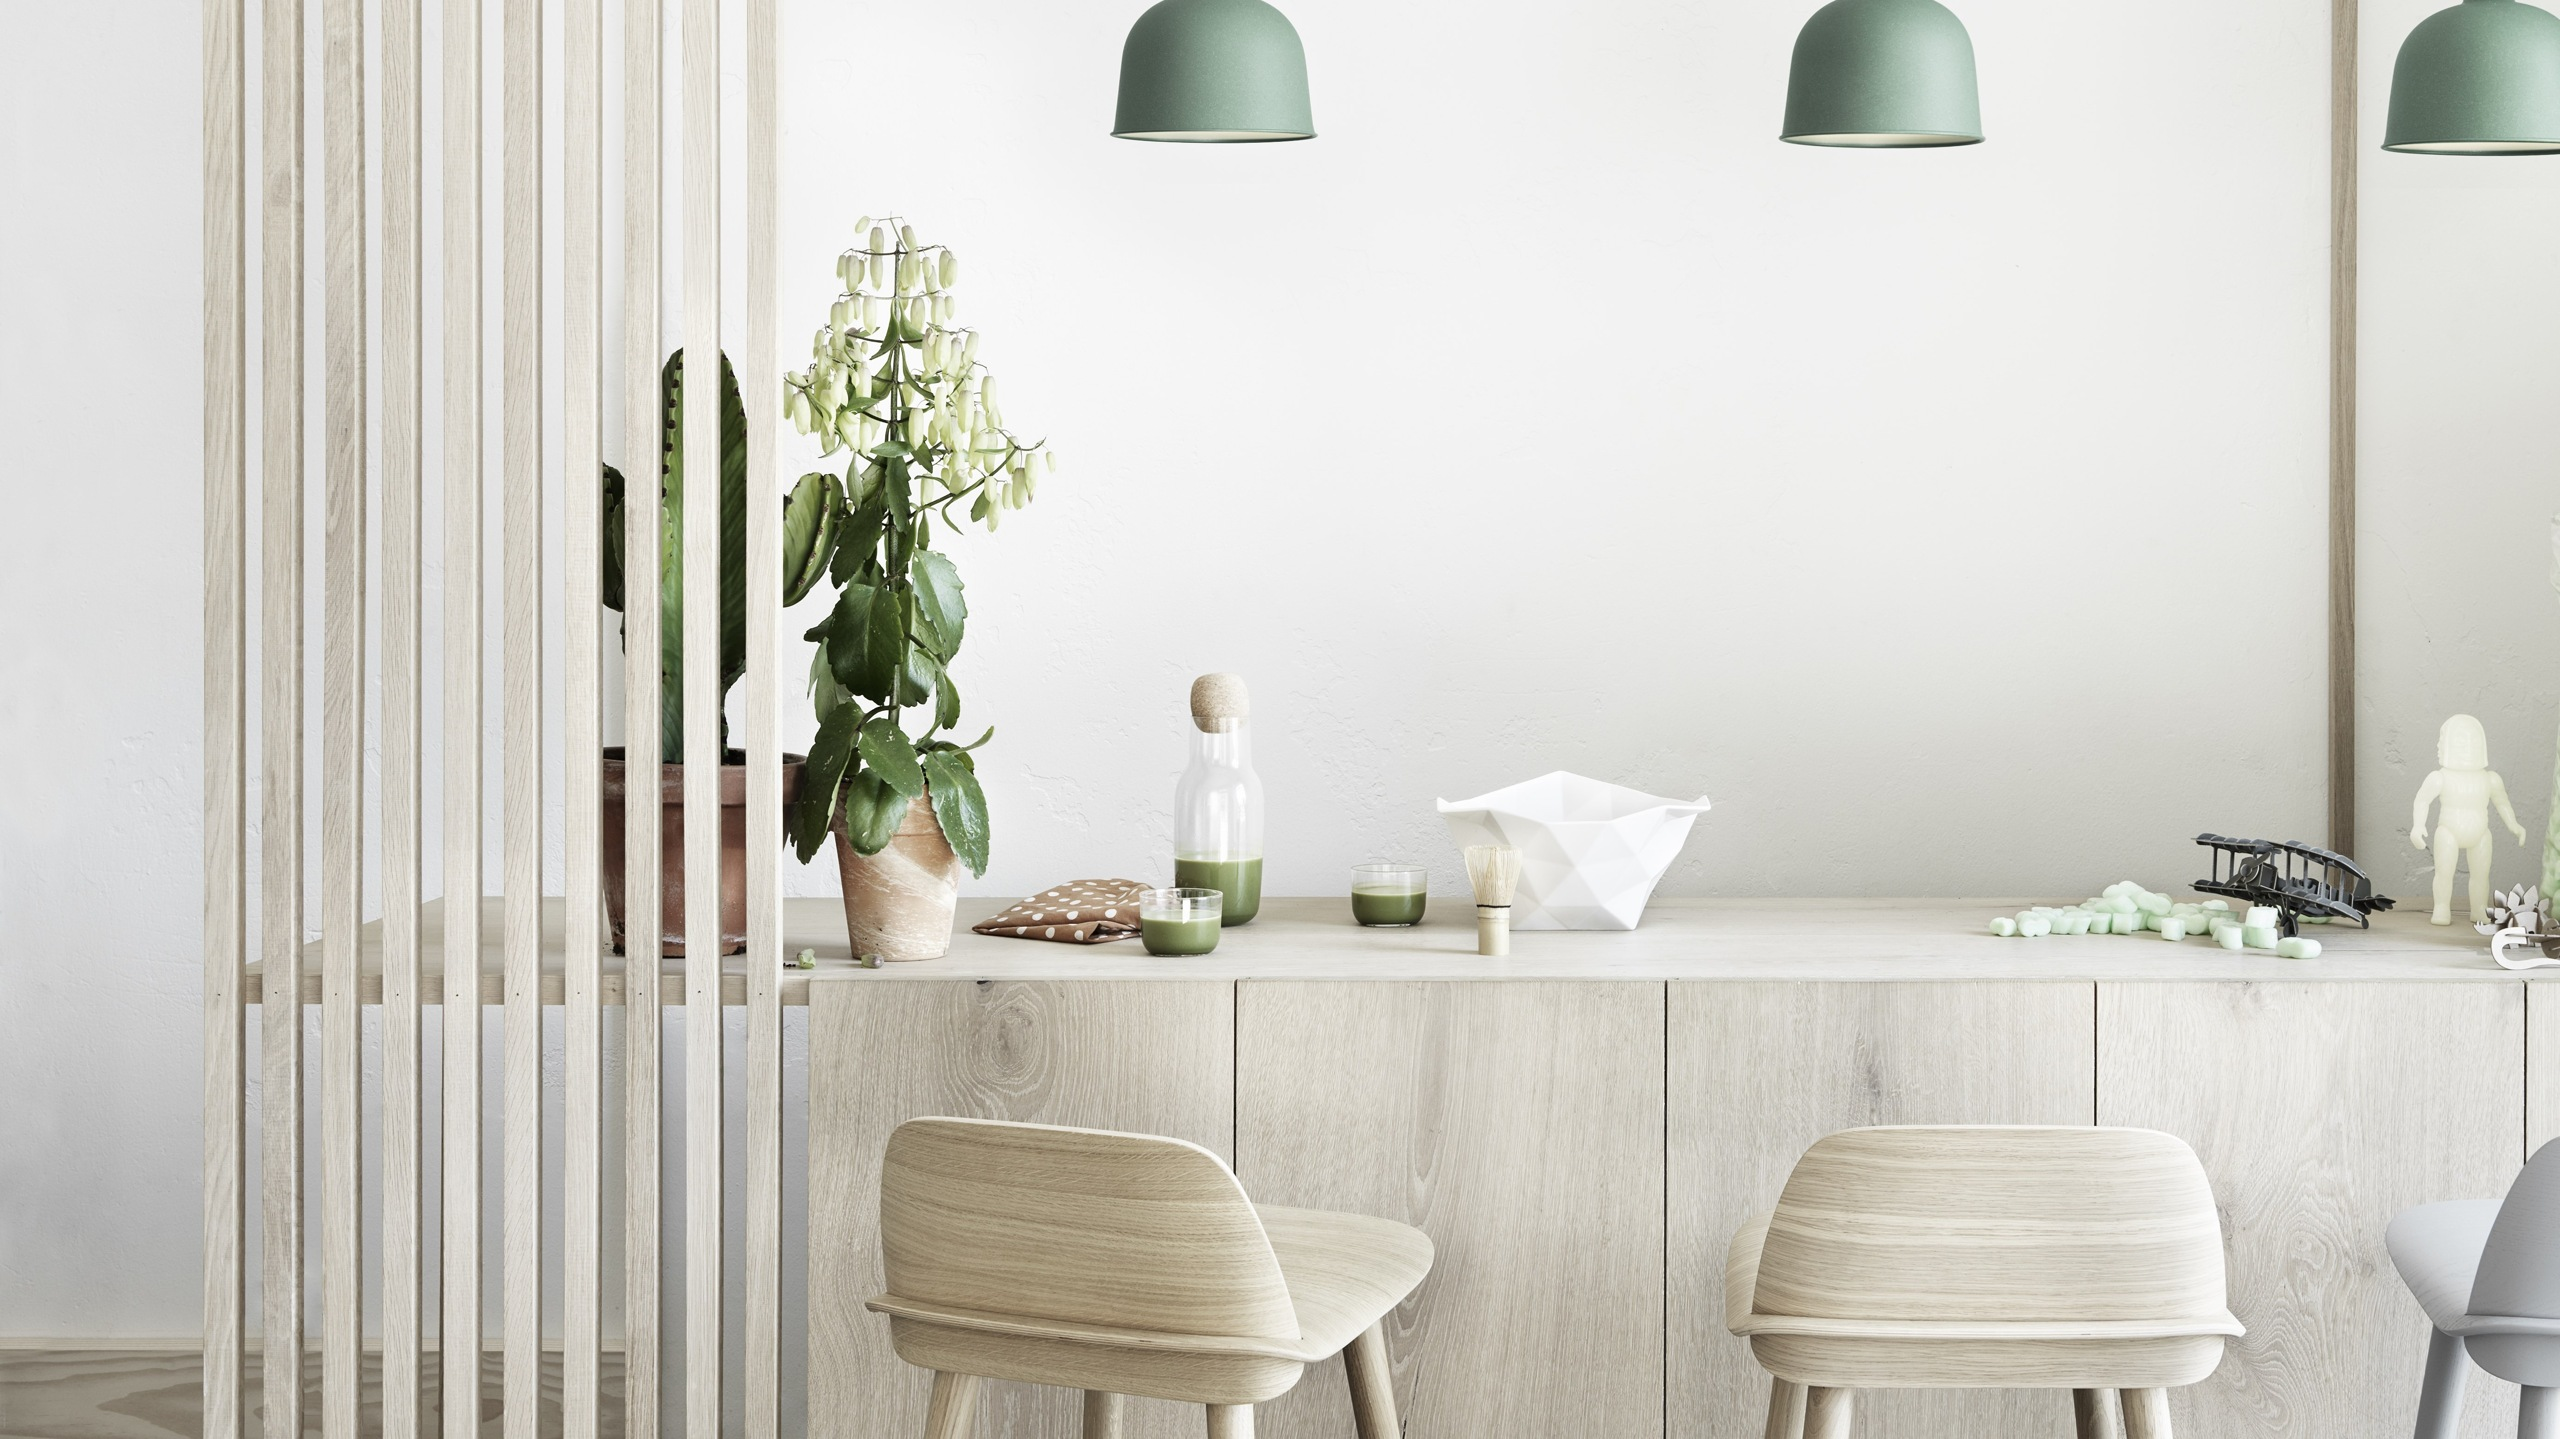 White-painted bar area with stools, pendant lighting and exposed ceiling